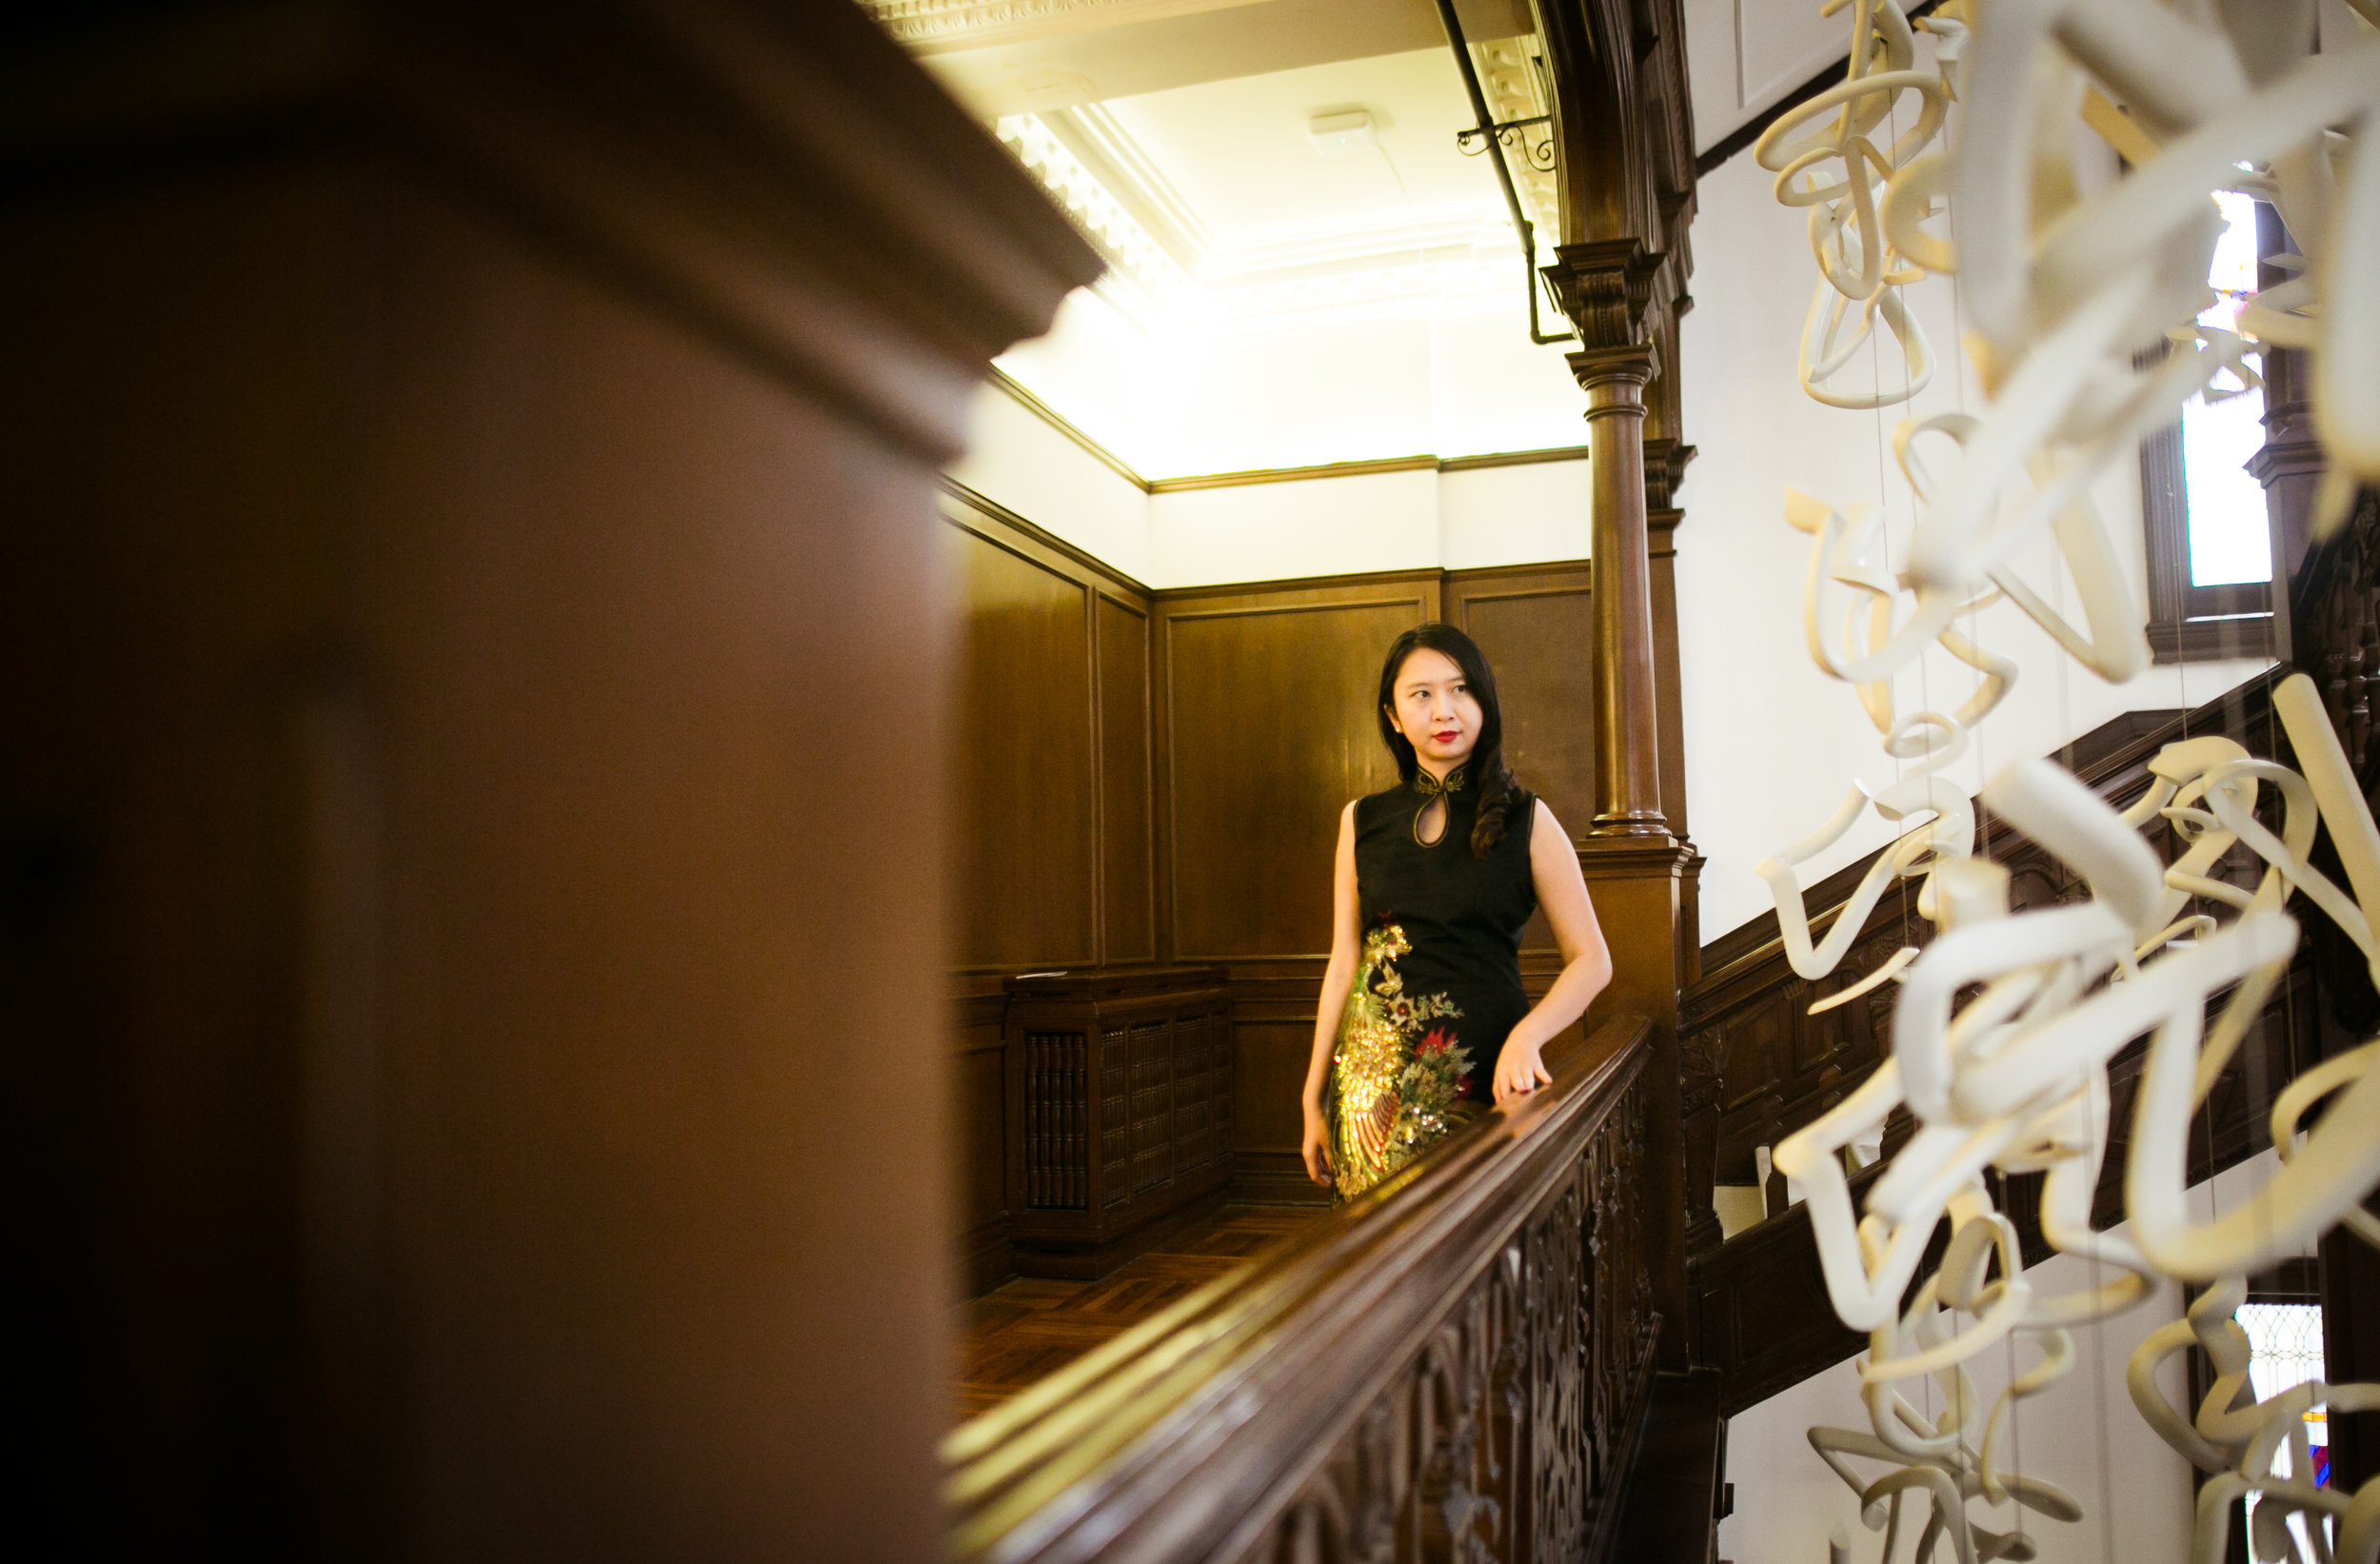 At Swatch Art Peace Hotel, wearing qipao from Shanghai market